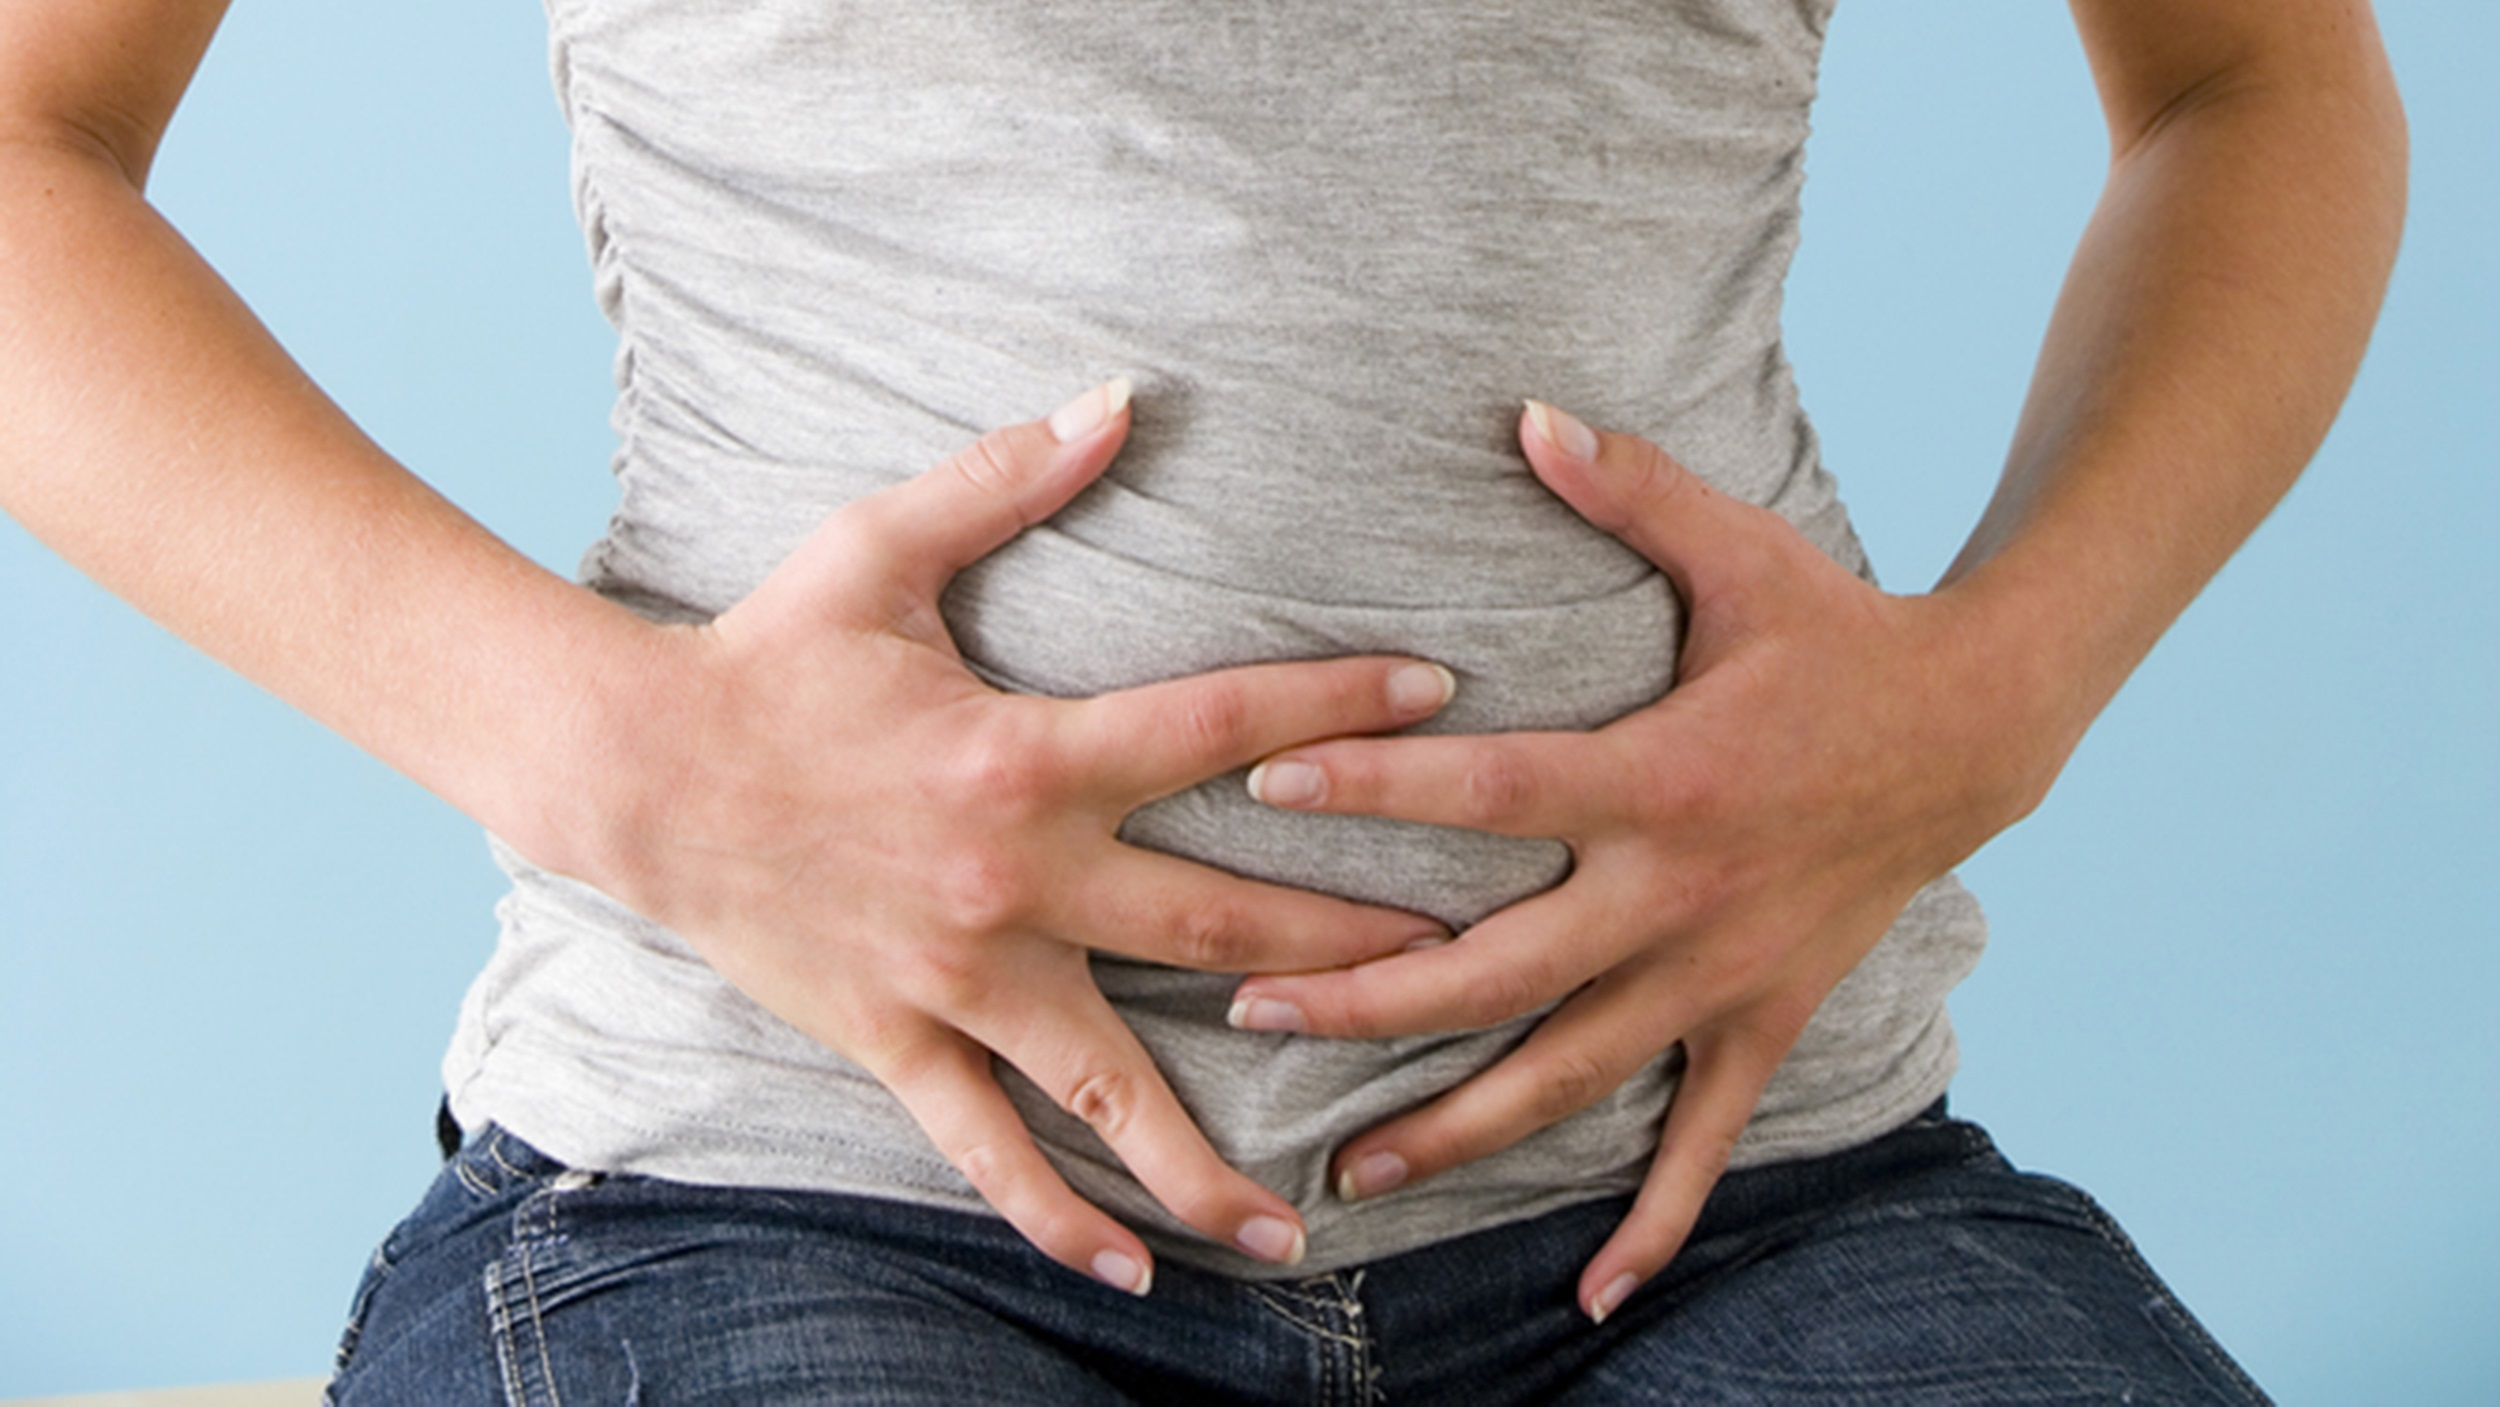 The Pain of Constipation and Frustration: How to Treat?